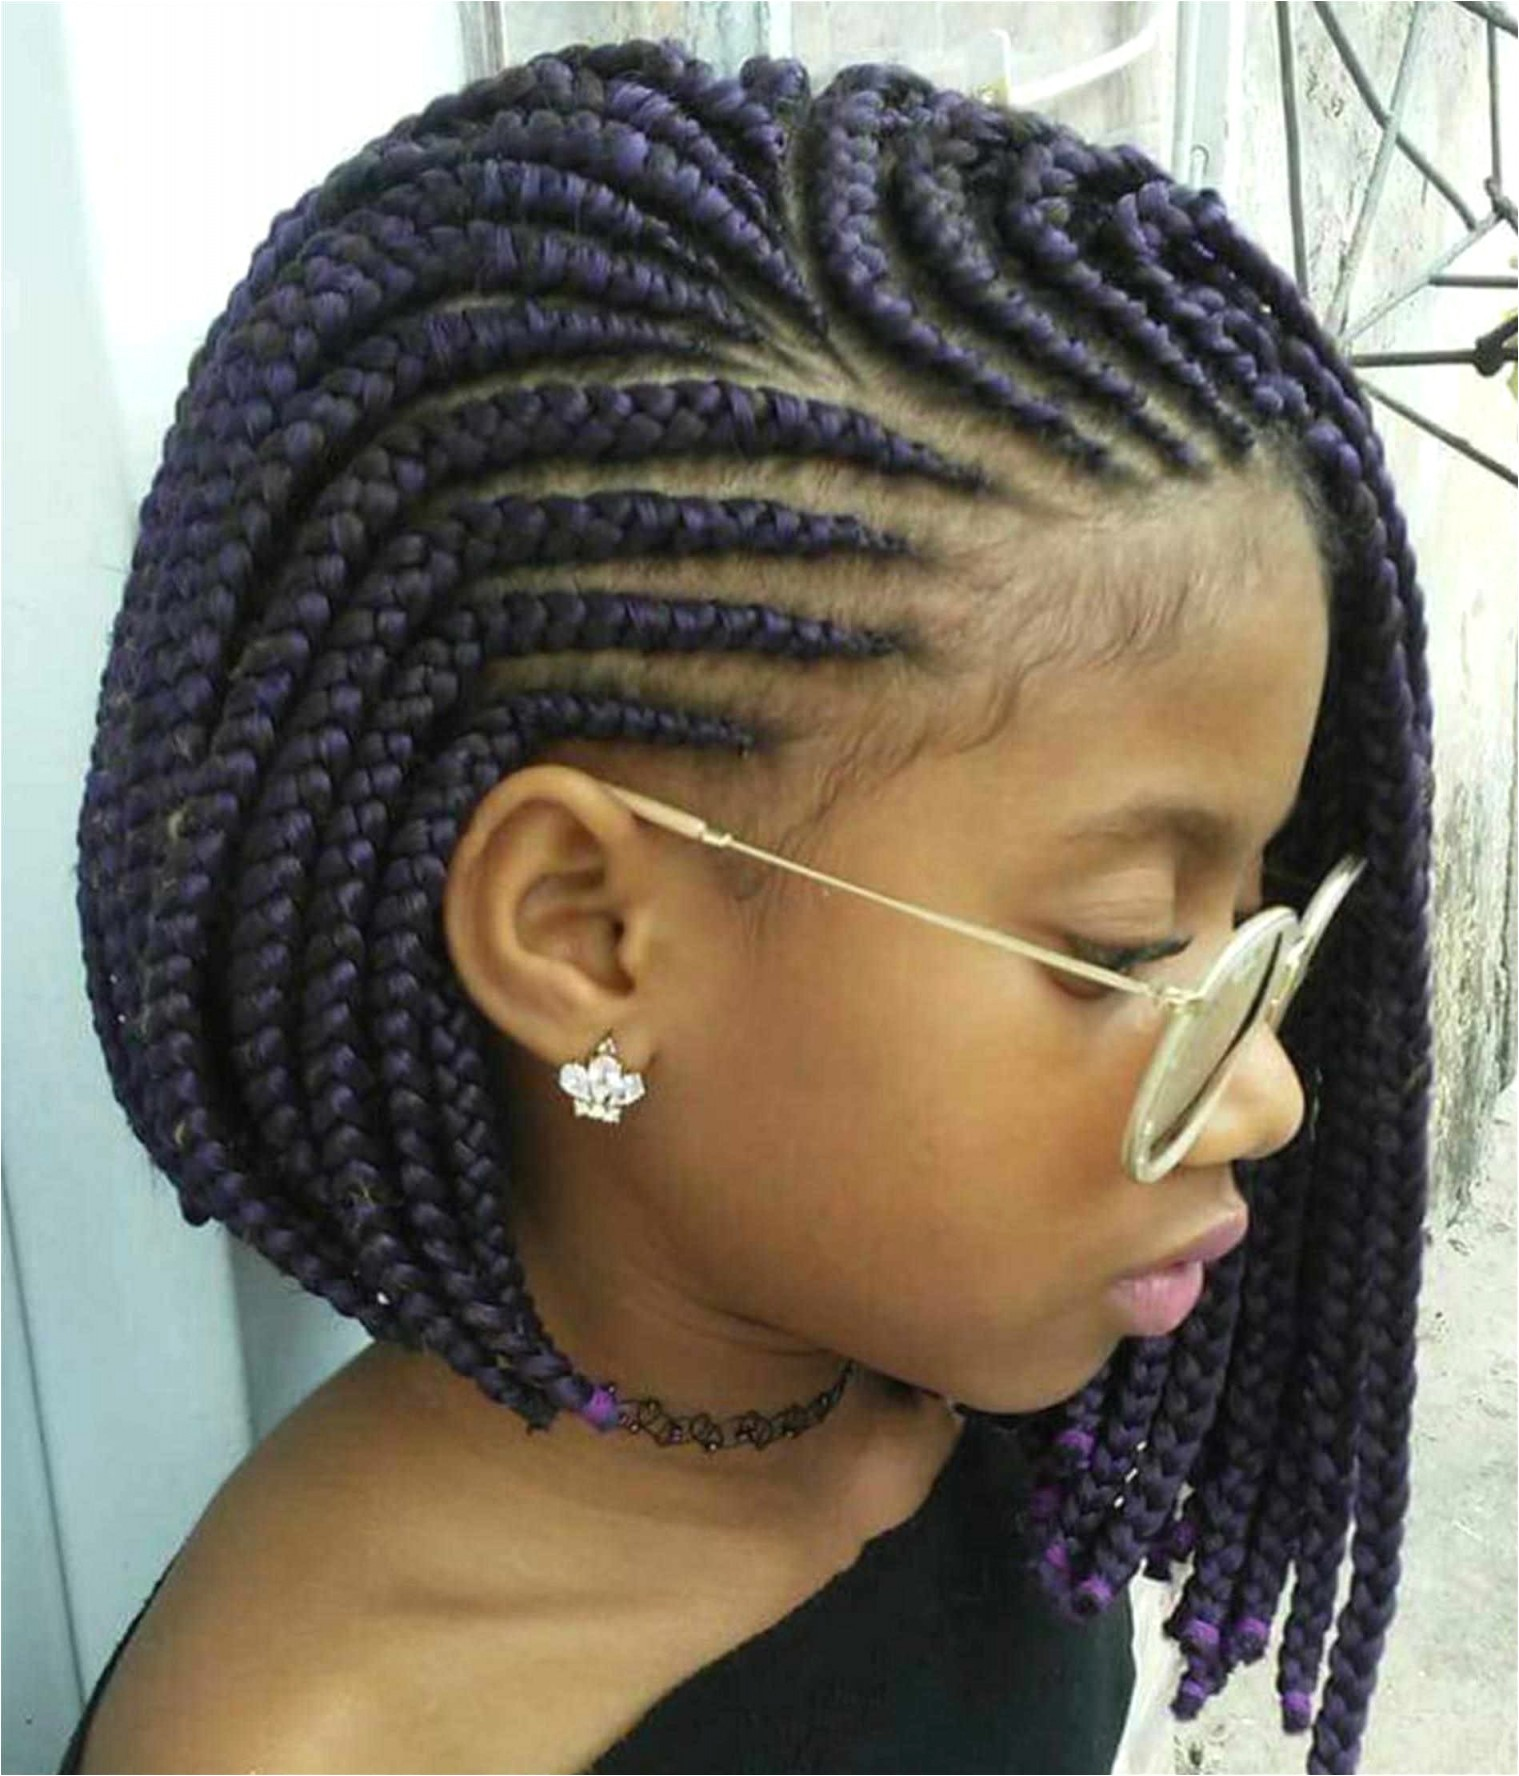 Black Braided Hairstyles 2015 African Braids Hairstyles 2015 Concept Awesome Awesome